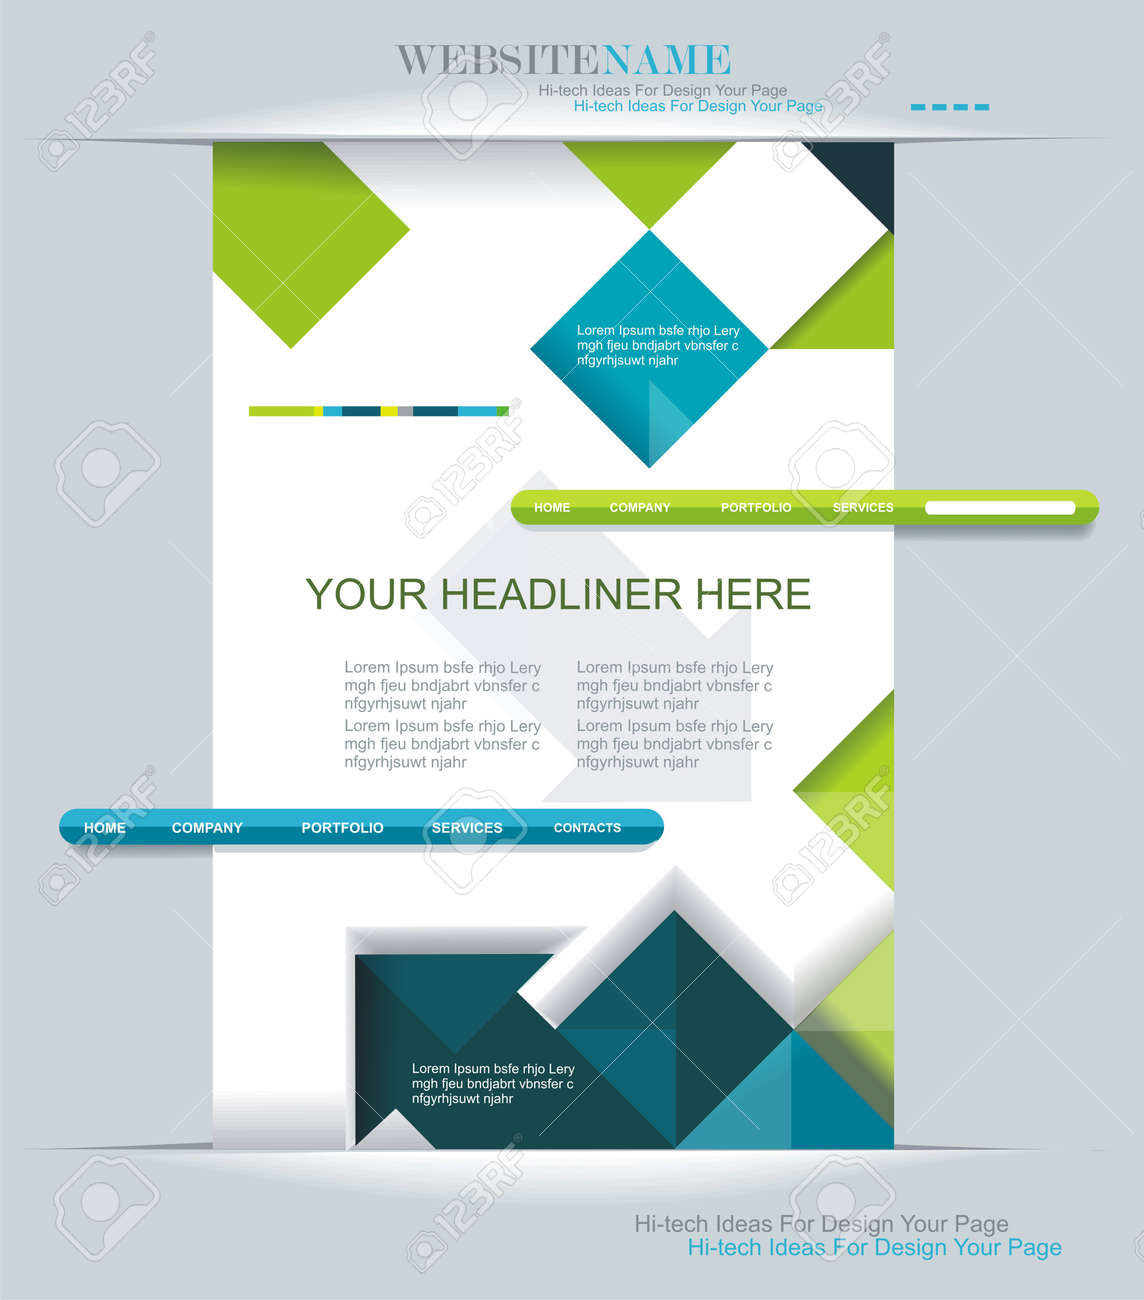 modern web design can be used for book cover graphics lay modern web design can be used for book cover graphics lay out content